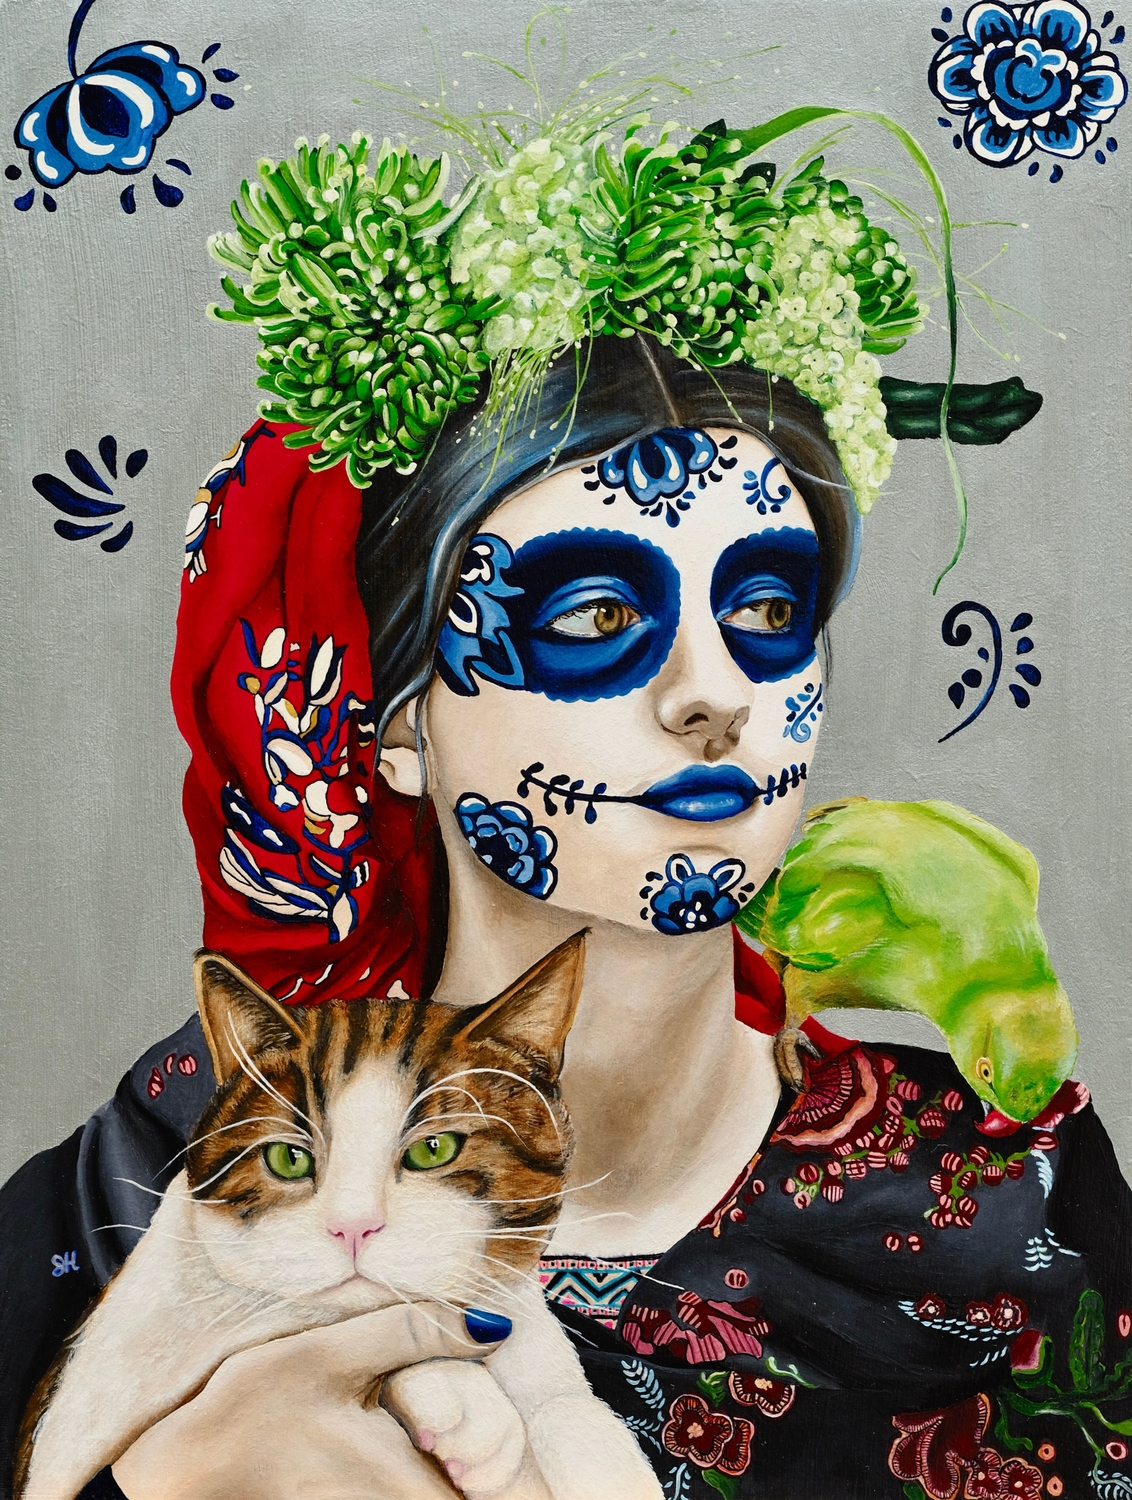 Portrait of a Girl with Cat and Bird Artwork by Saskia Huitema